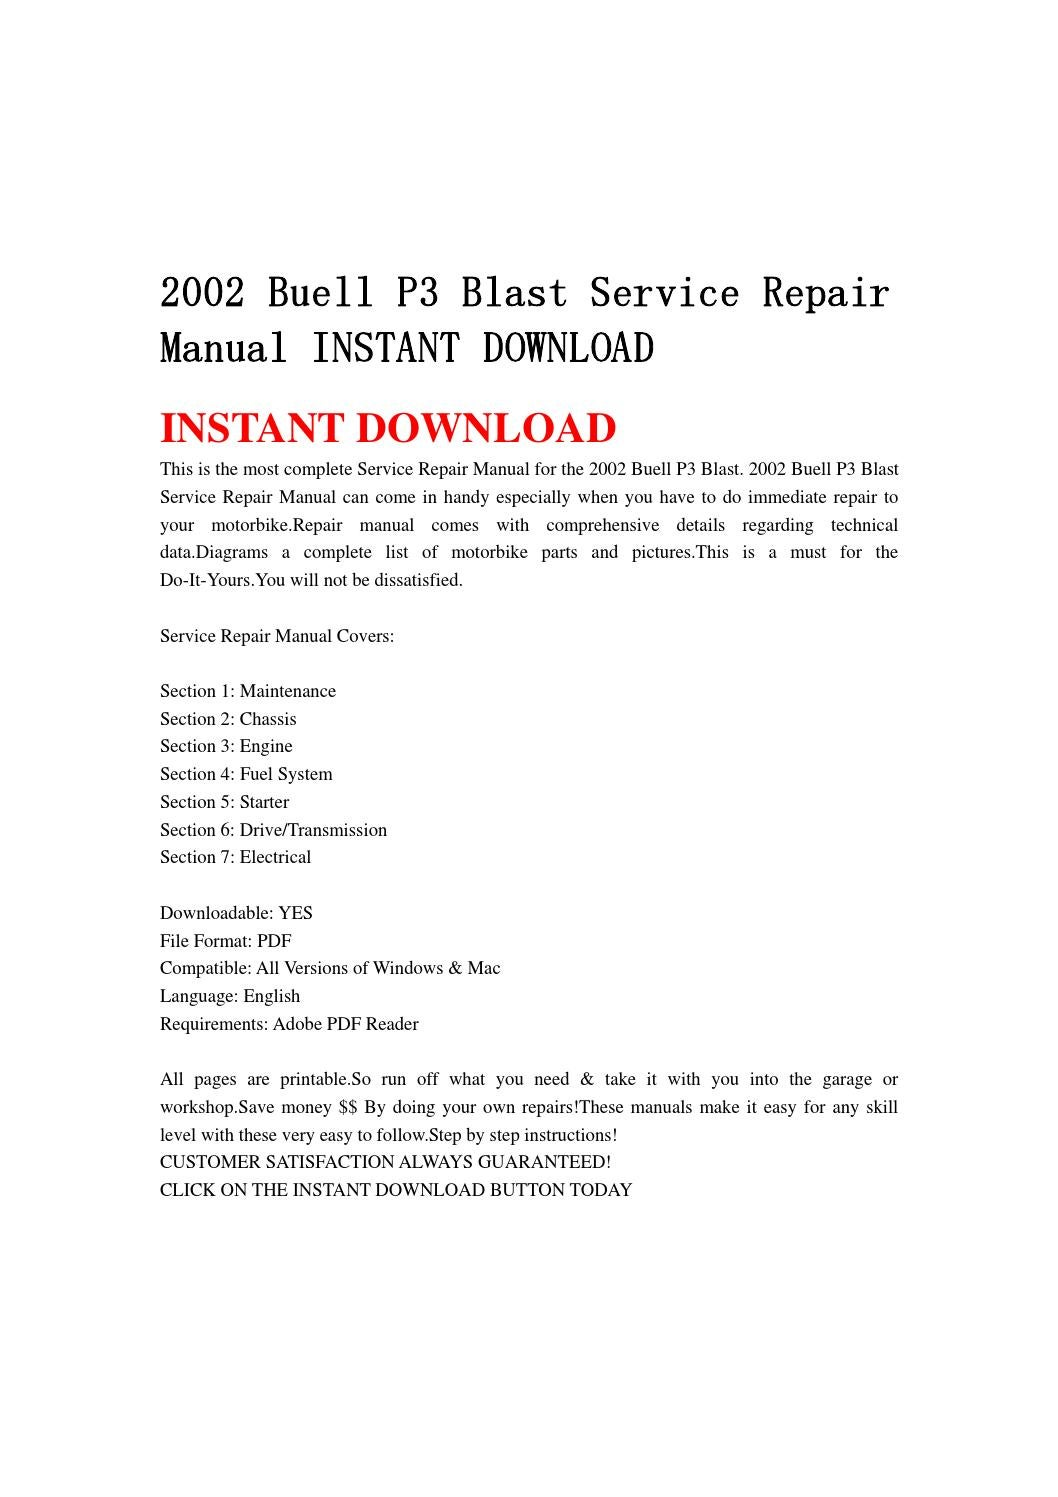 2002 buell p3 blast service repair manual instant download by jshenfnne -  issuu